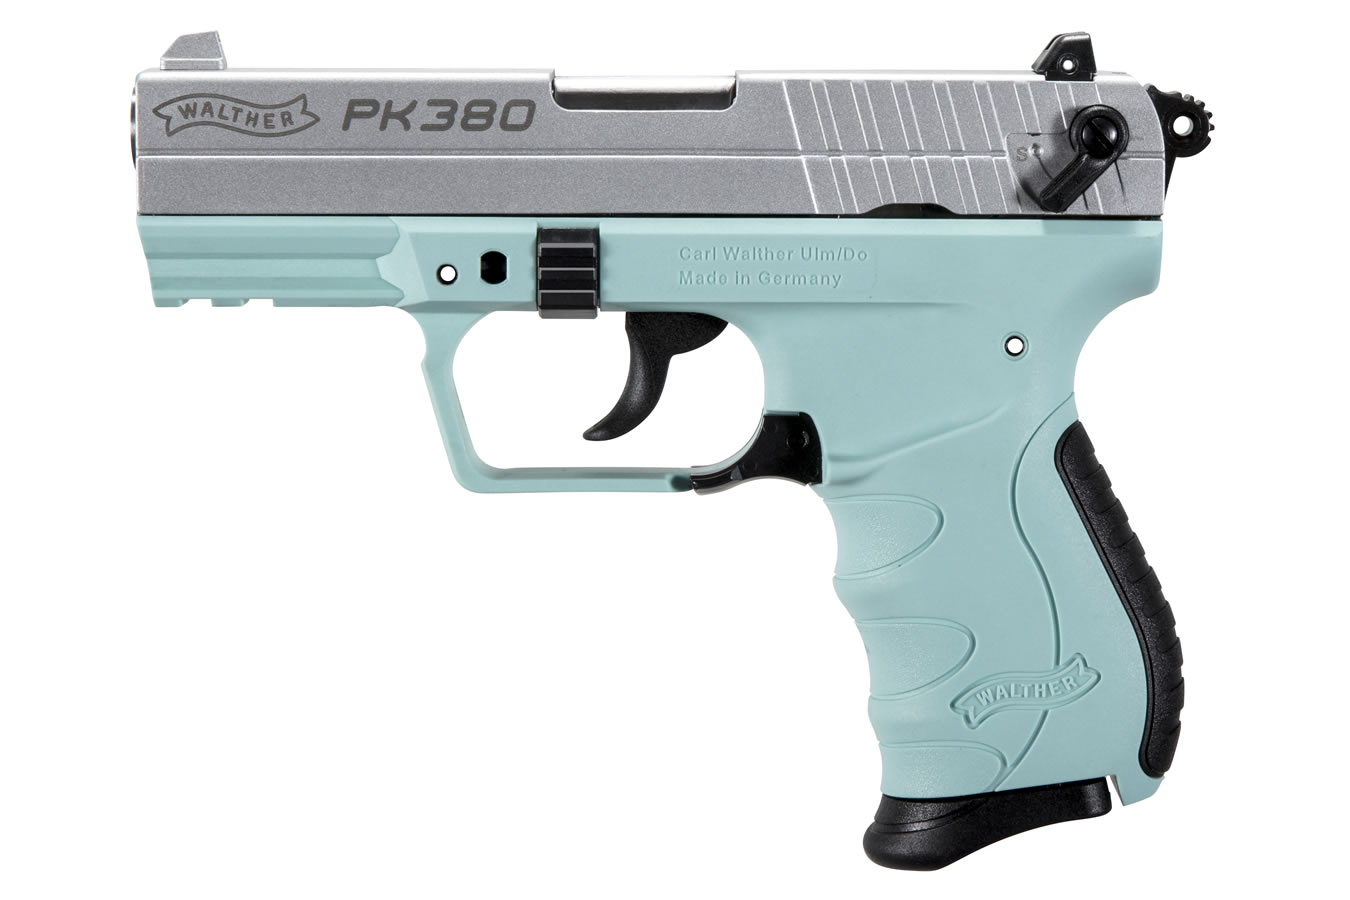 walther pk380 380 acp centerfire pistol with angel blue frame and rh sportsmansoutdoorsuperstore com Walther P22 Walther PPQ